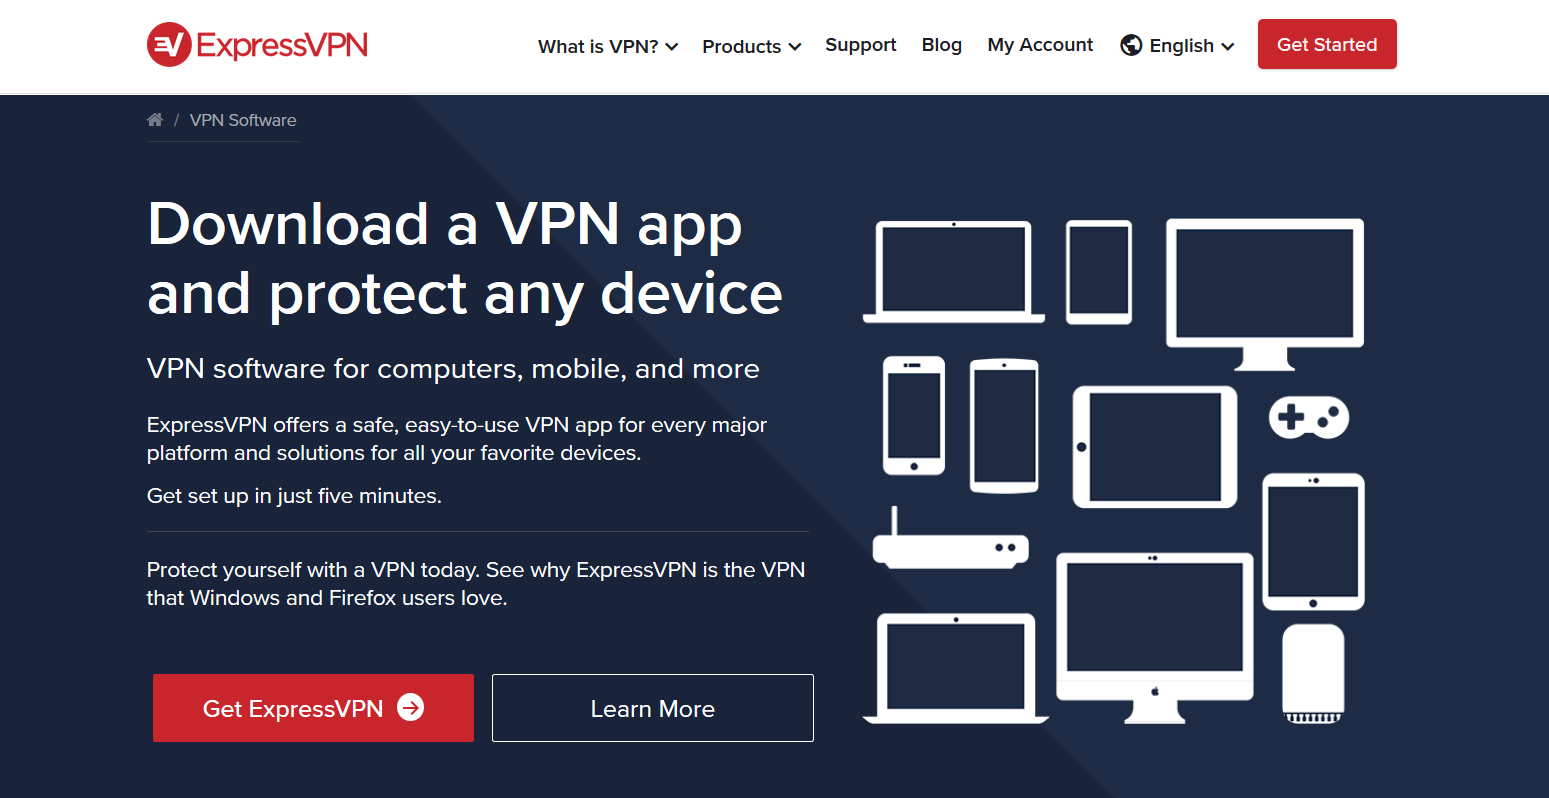 Download ExpressVPN app and protect any device